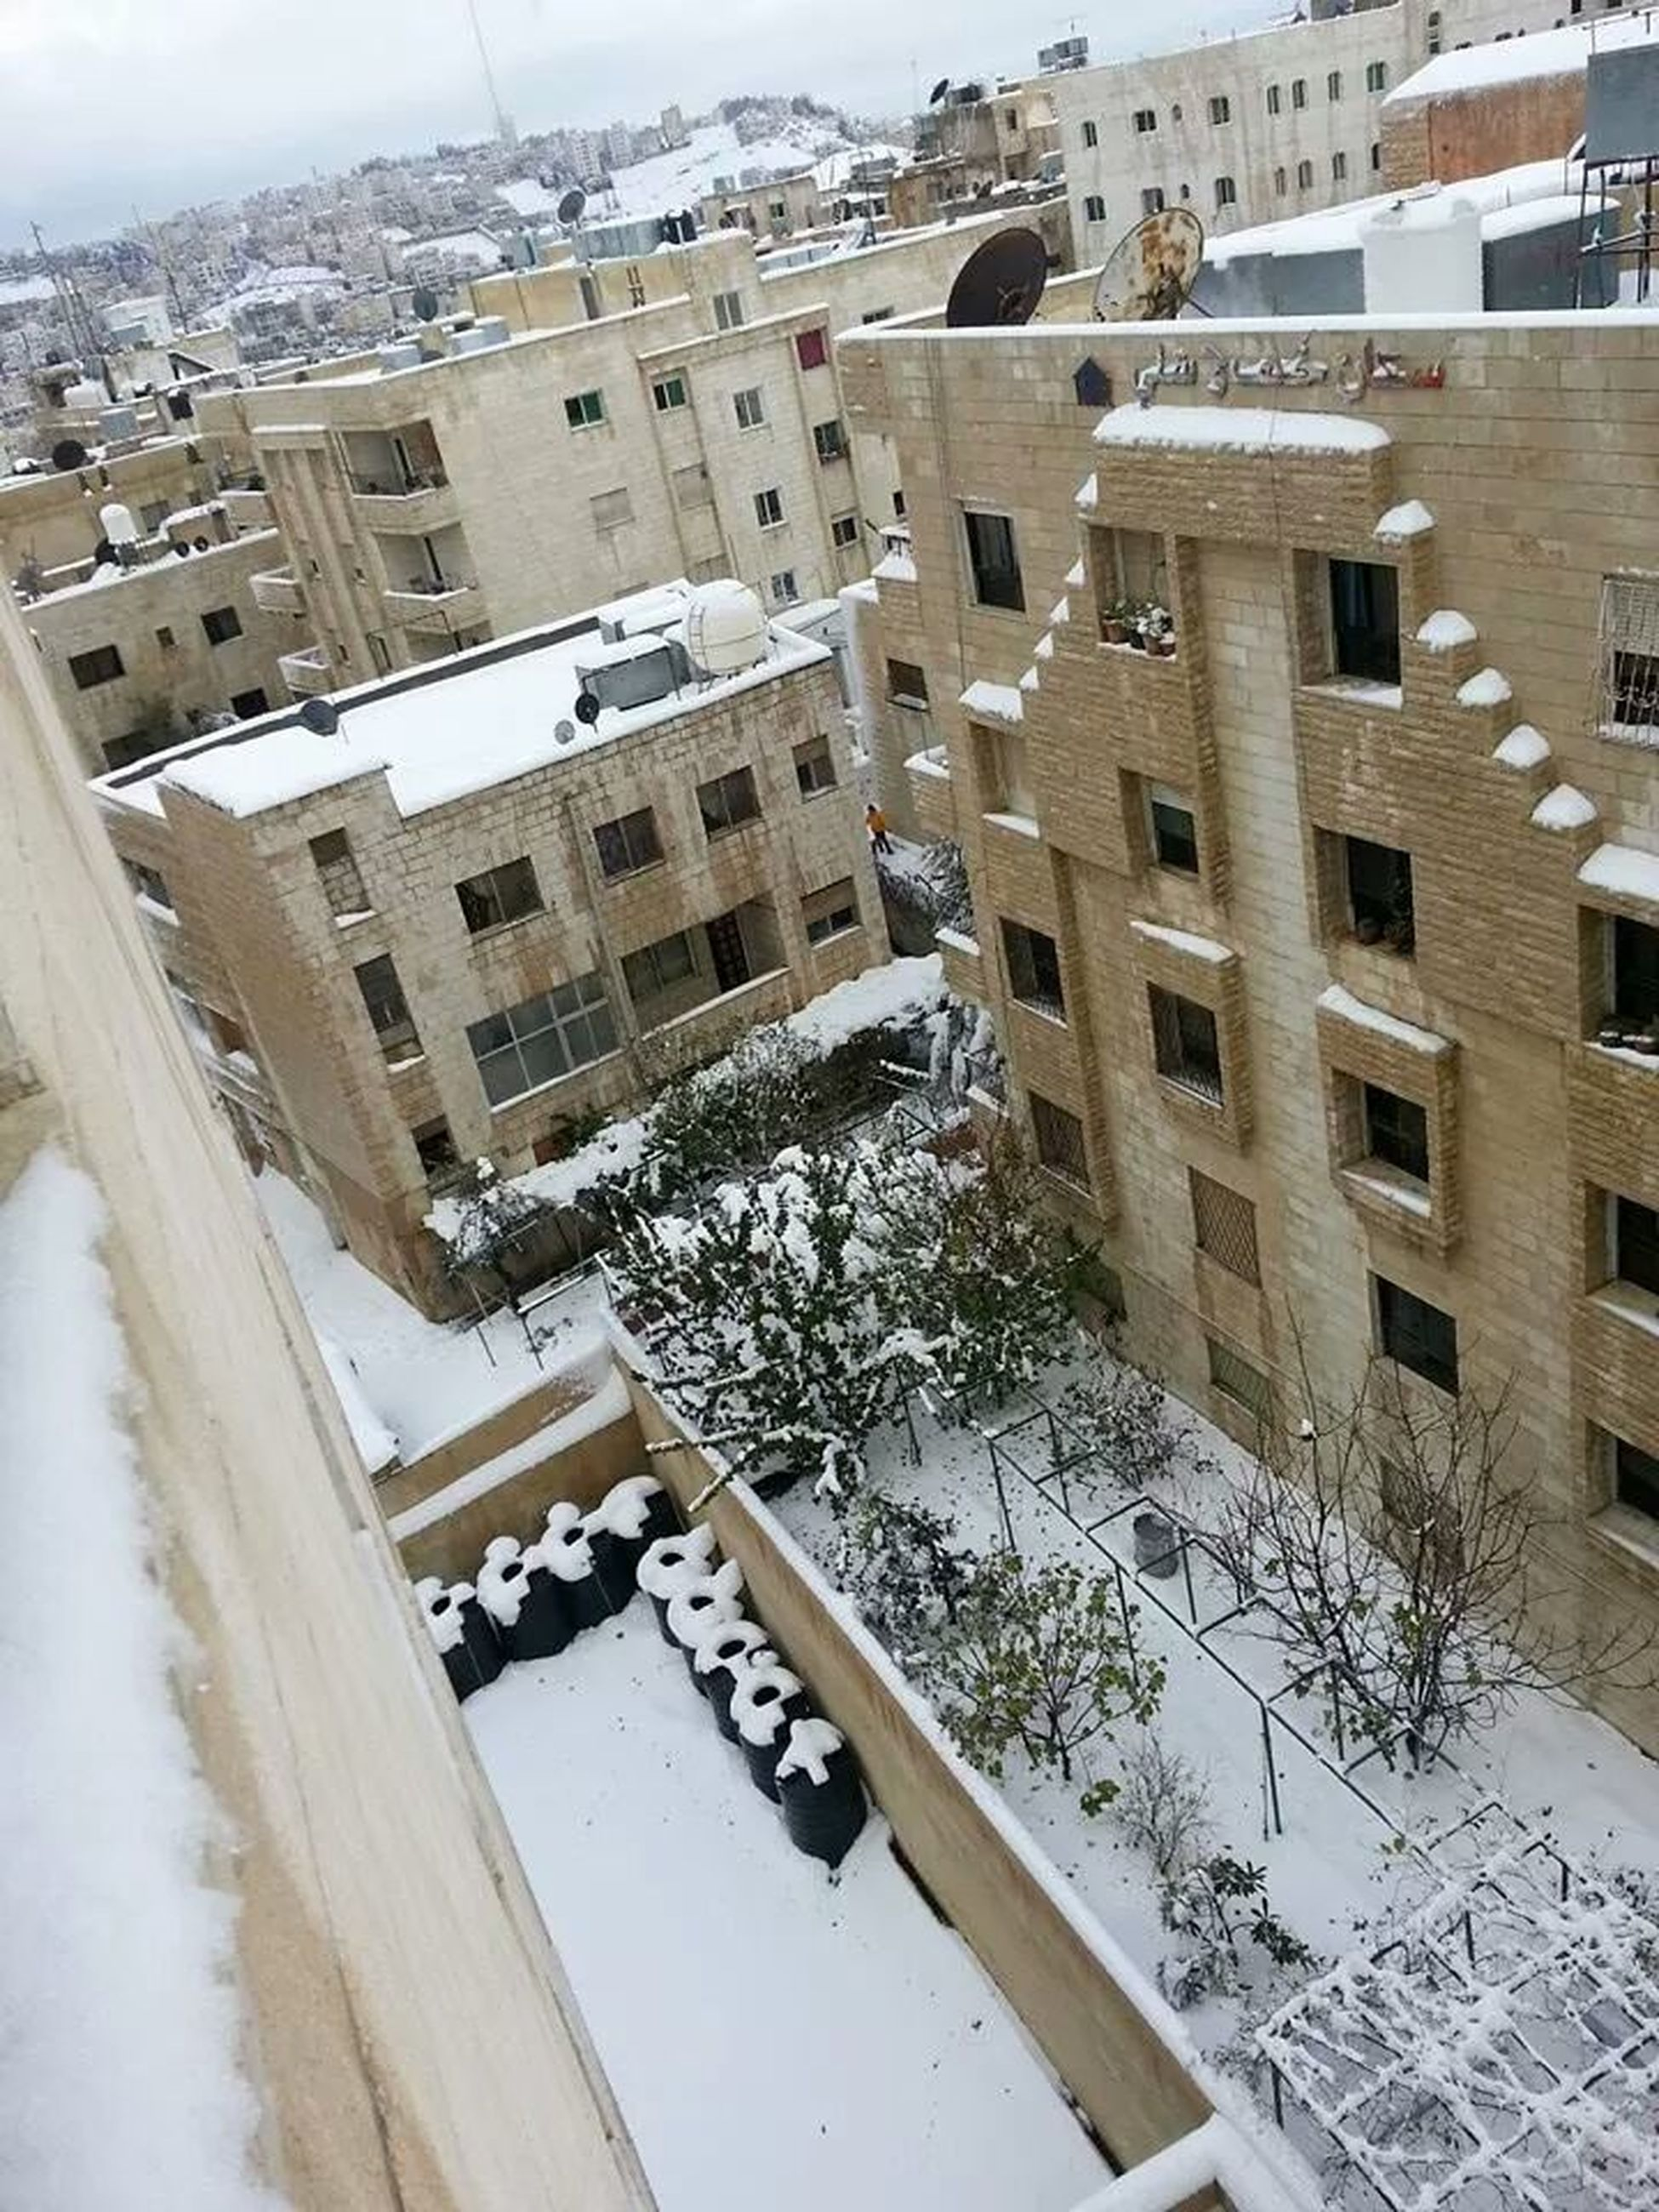 building exterior, architecture, built structure, winter, snow, residential structure, residential building, high angle view, cold temperature, house, city, water, residential district, day, season, tree, outdoors, town, building